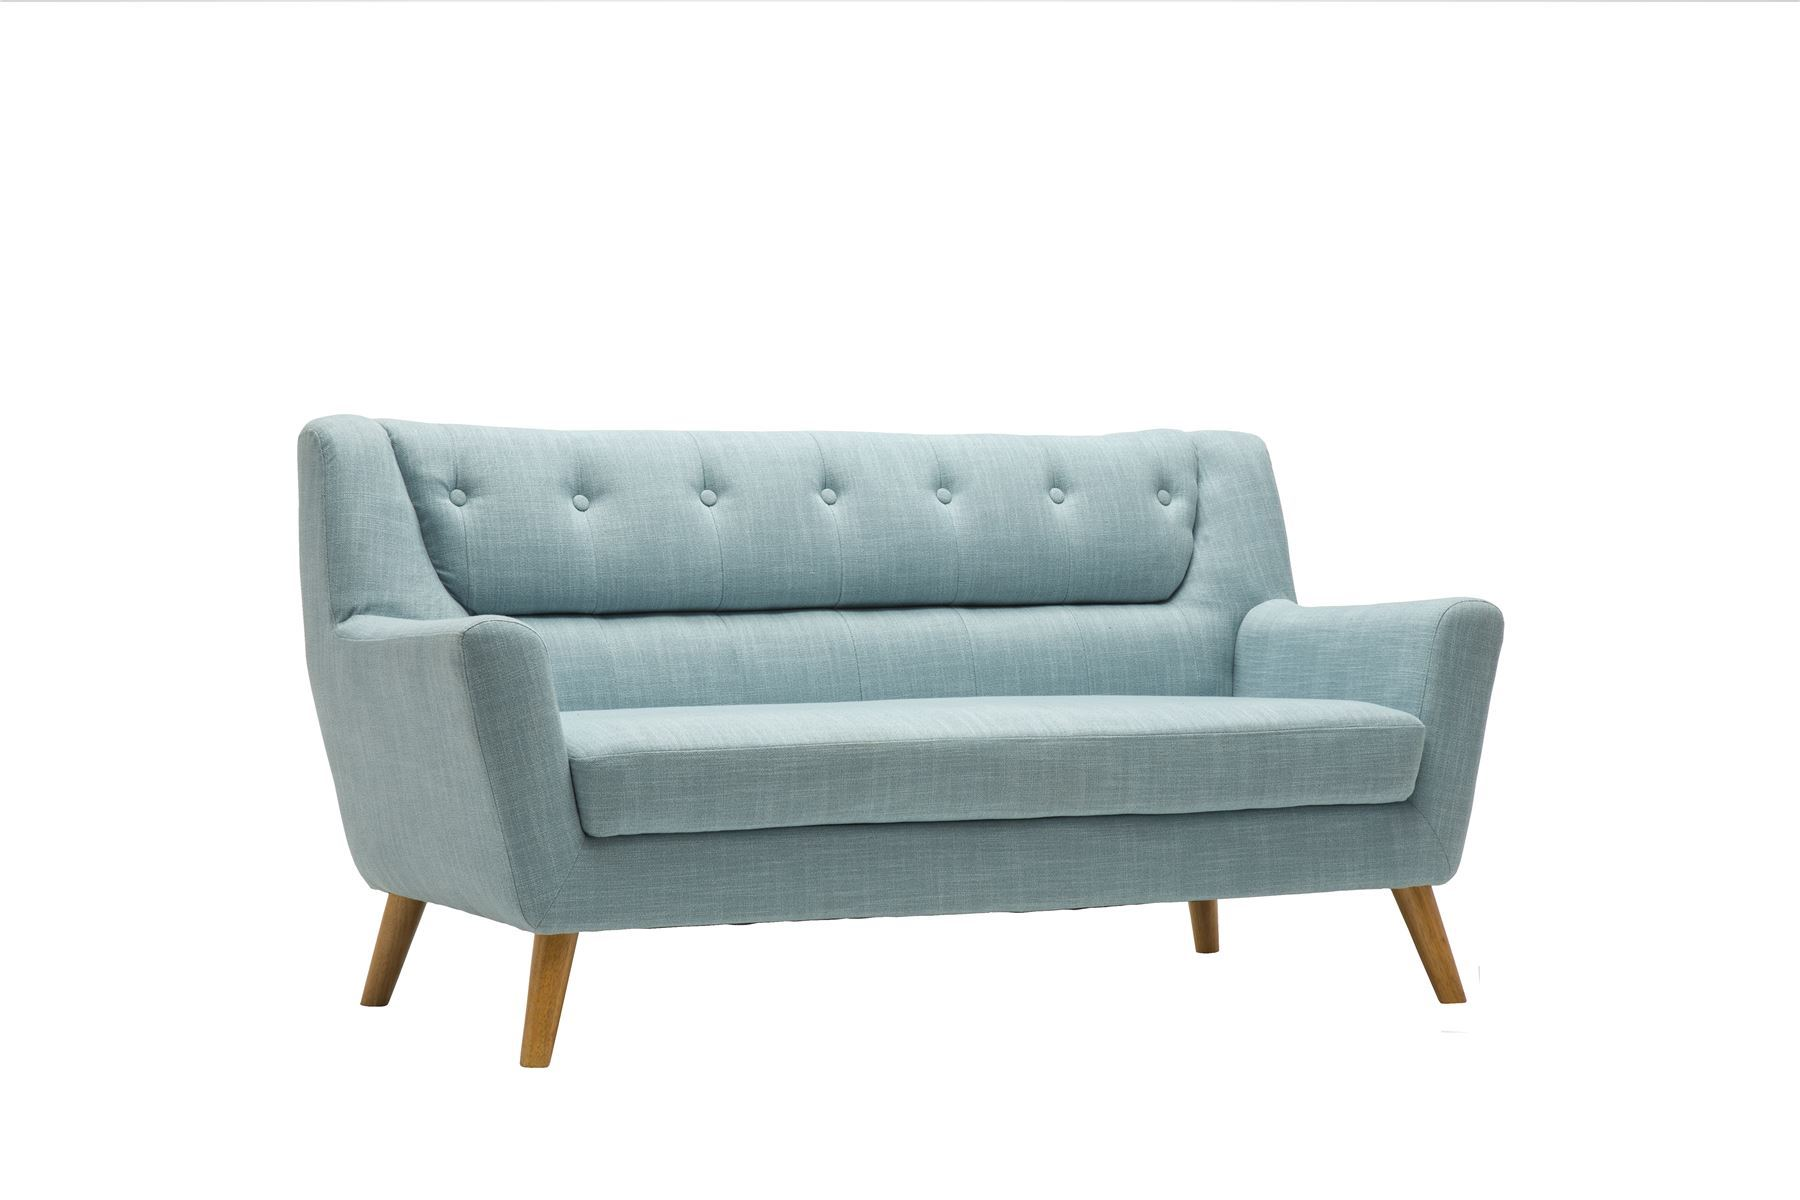 Birlea Lambeth 3 Seater Duck Egg Blue Large Sofa Settee Scandinavian Retro